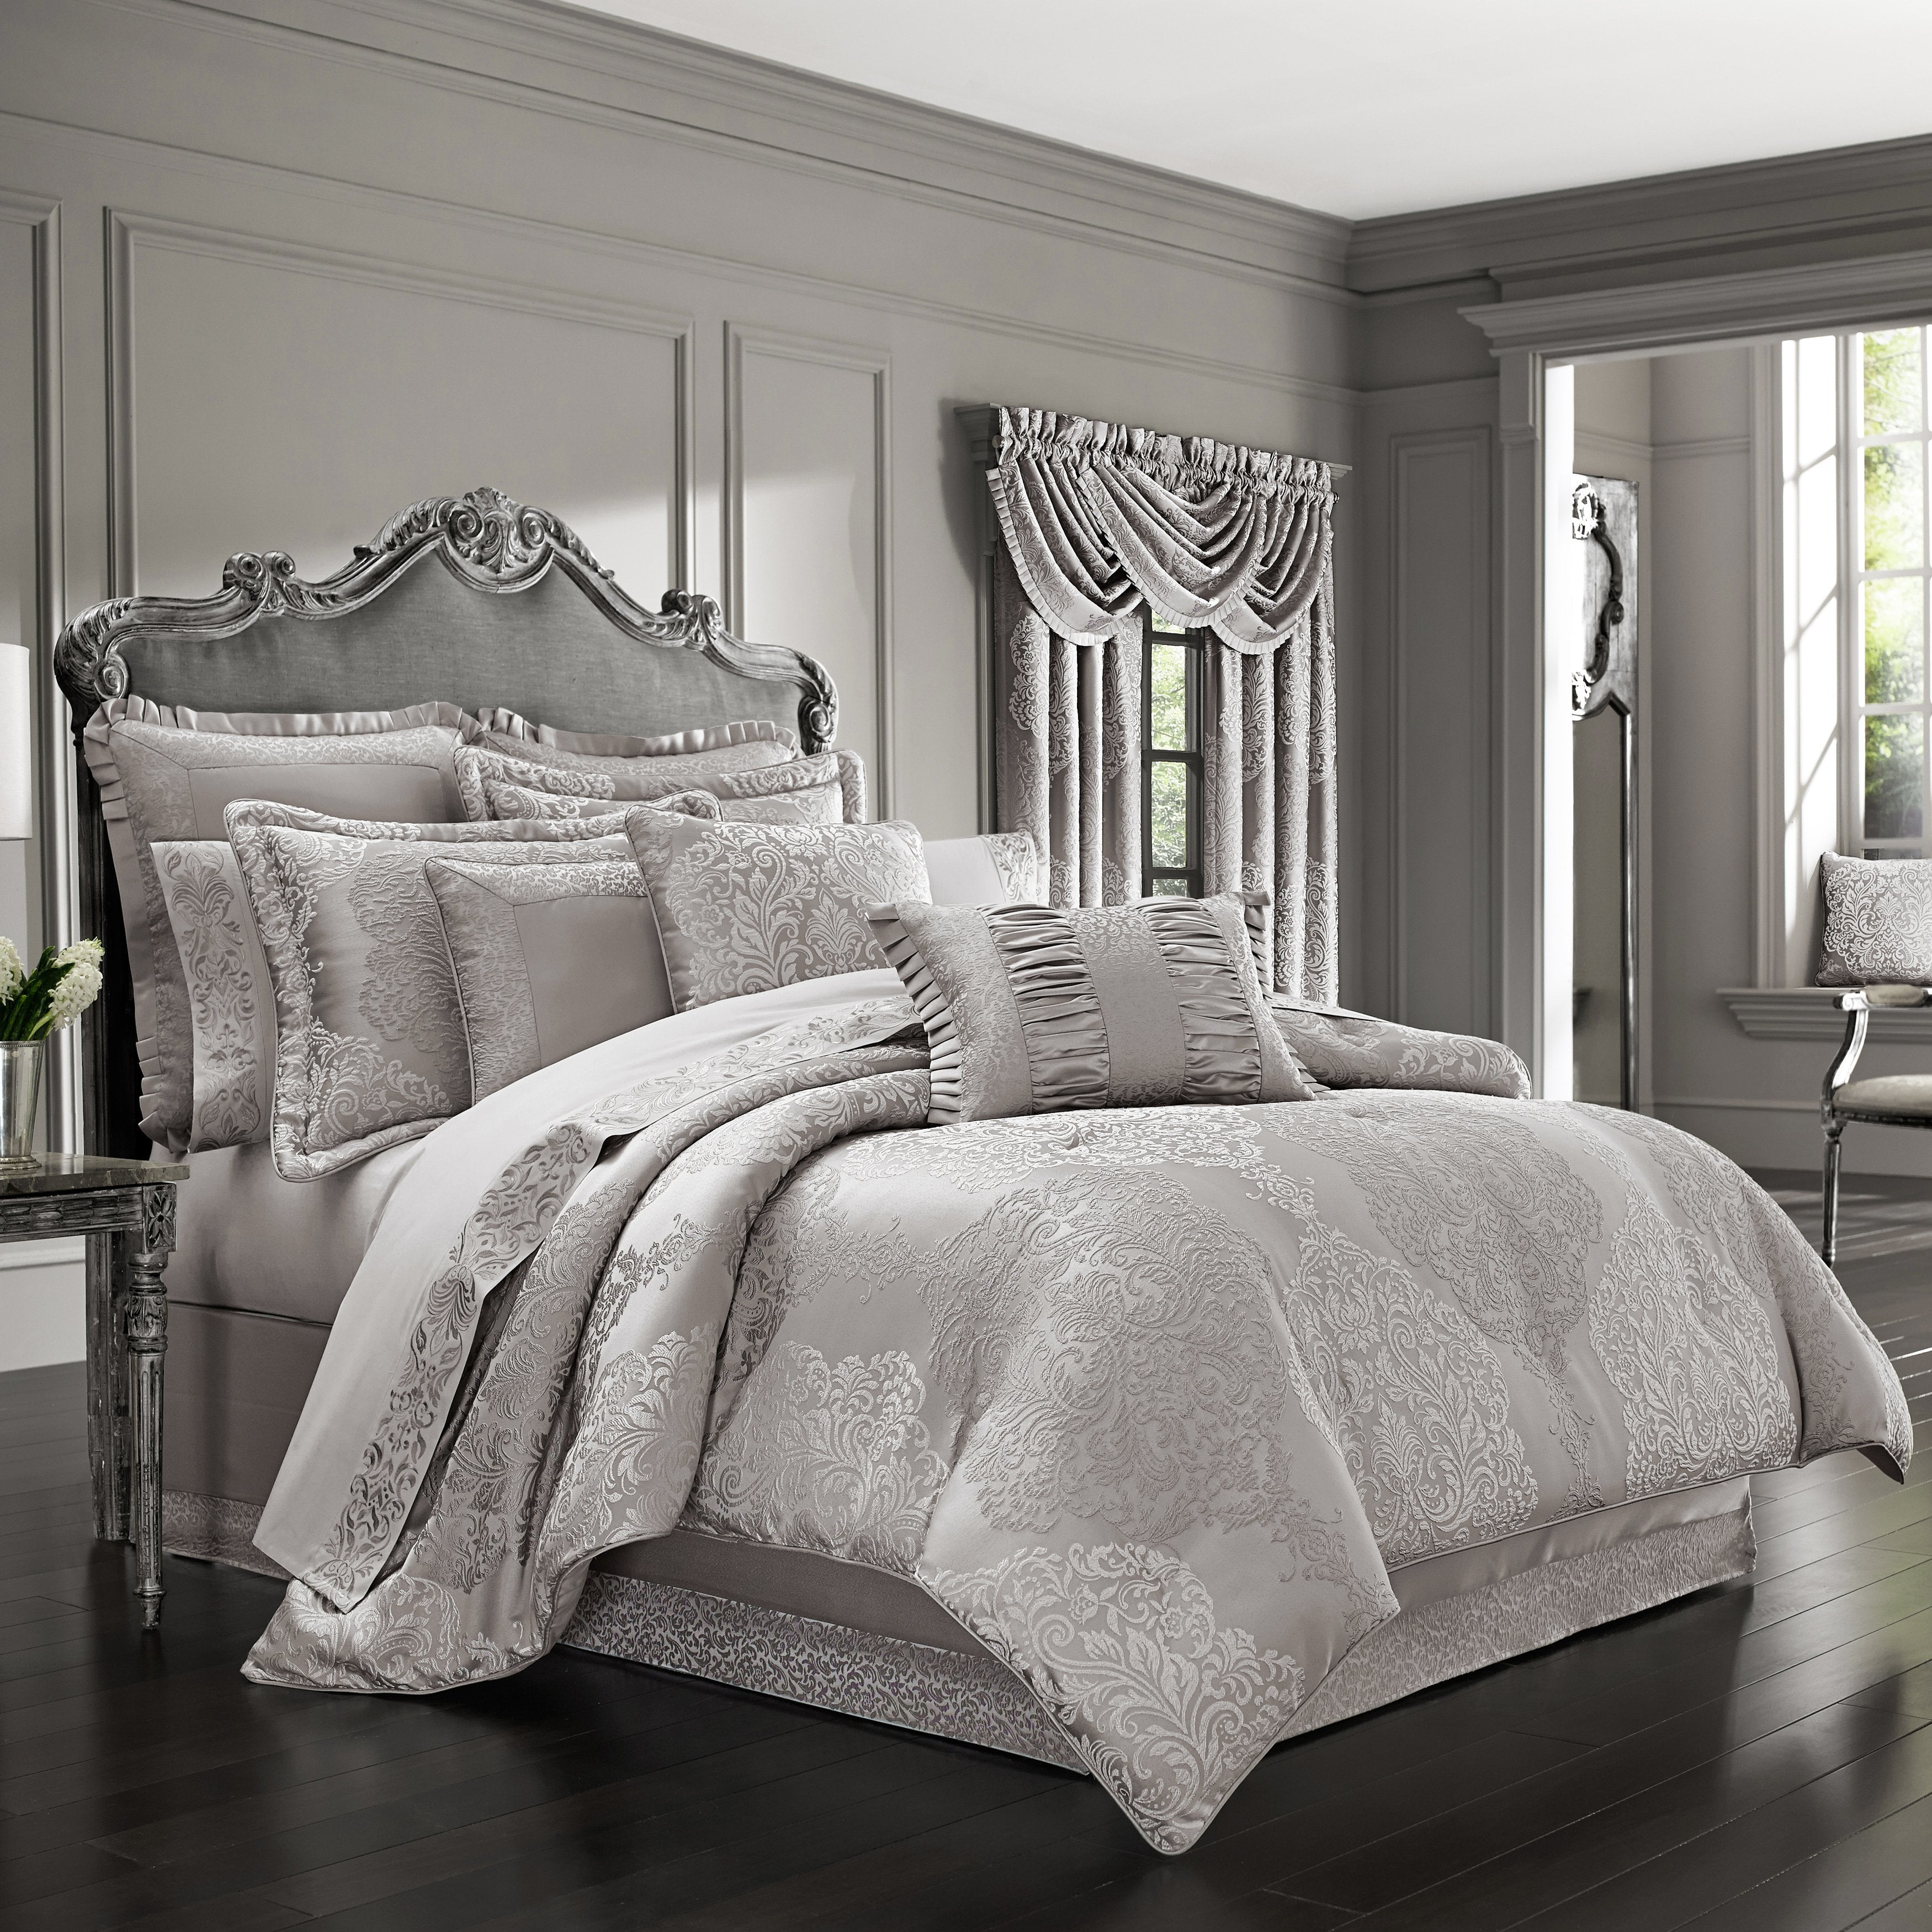 LaScala Silver 4-Piece Comforter Set Comforter Sets By J. Queen New York